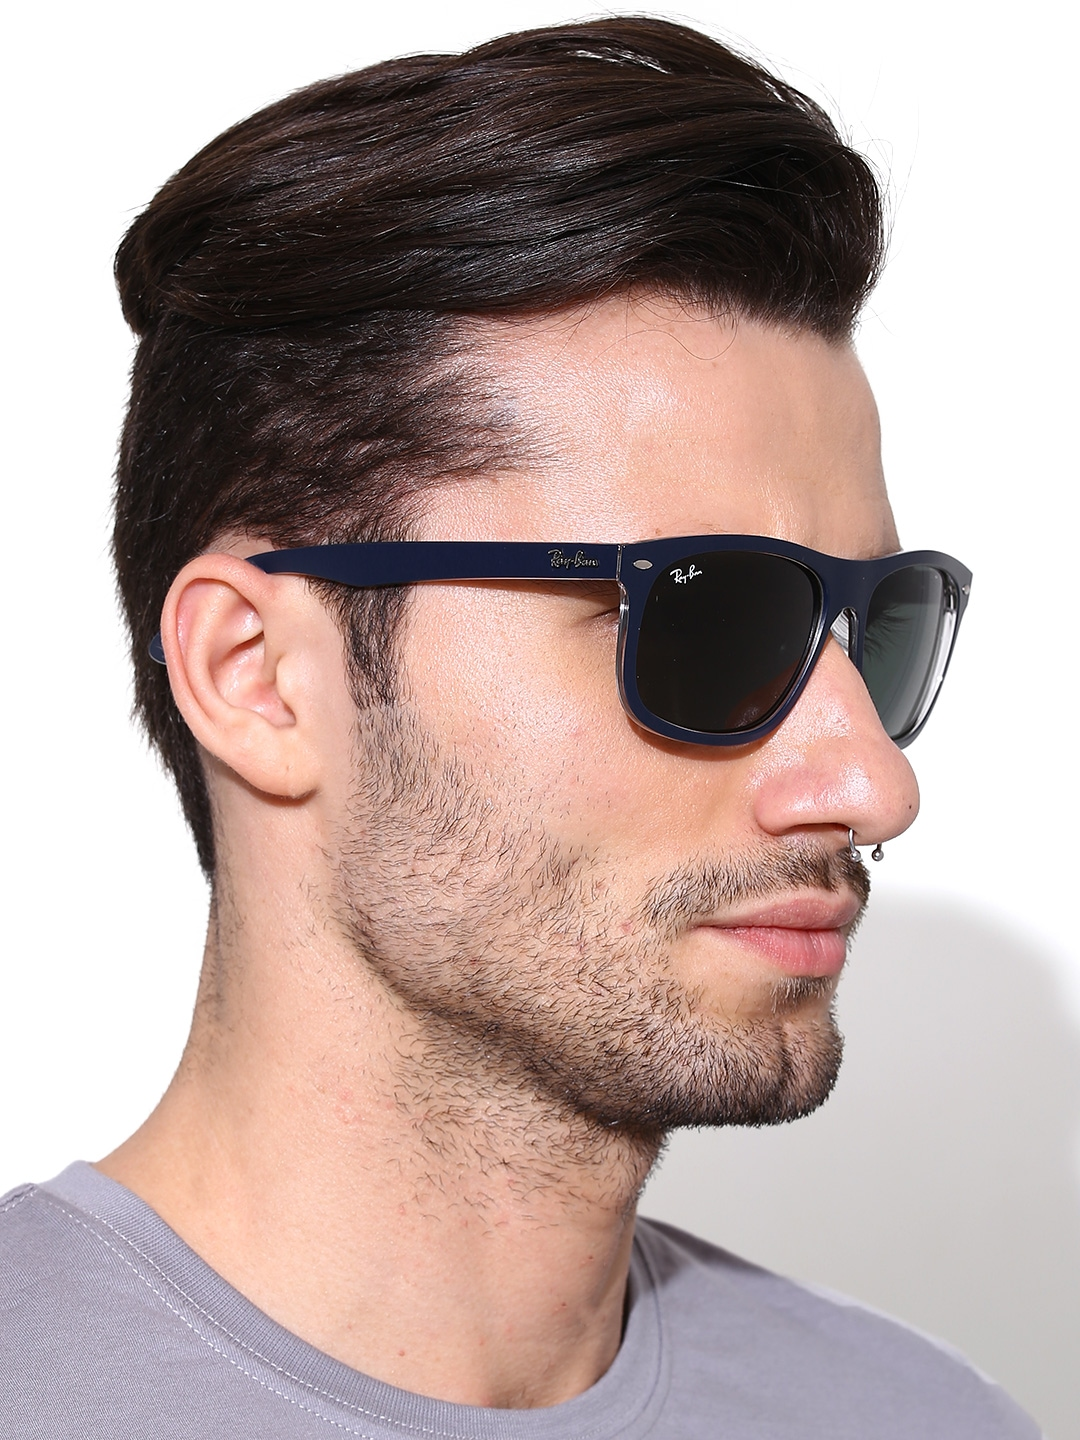 ray ban sunglasses for men sale  Ray Ban Square Sunglasses - Ficts